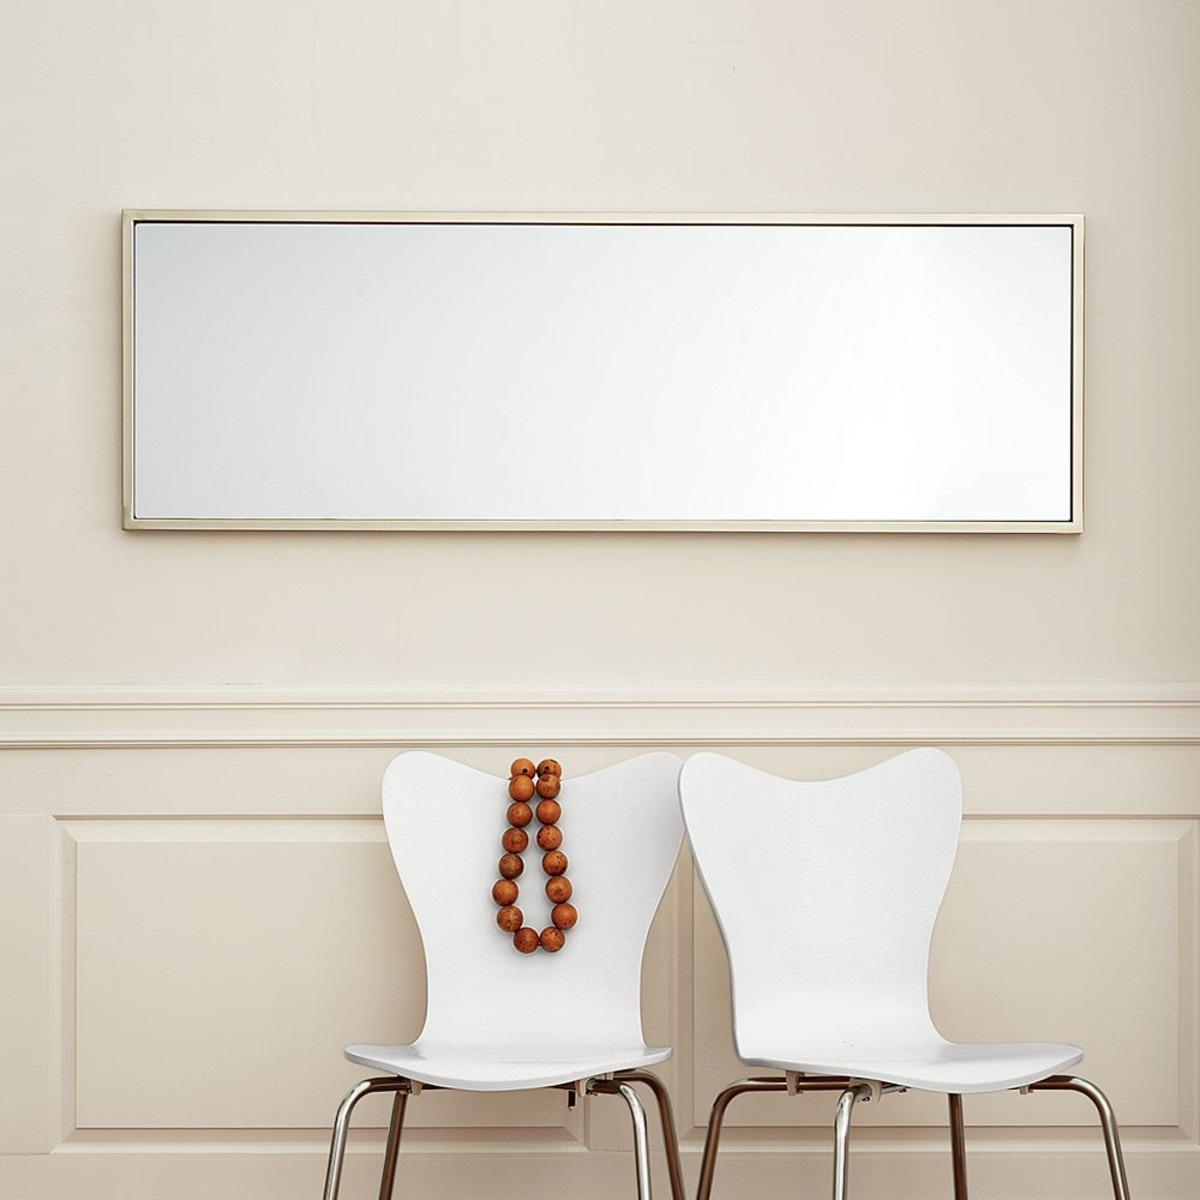 15 best collection of landscape wall mirror mirror ideas featured image of landscape wall mirror amipublicfo Gallery